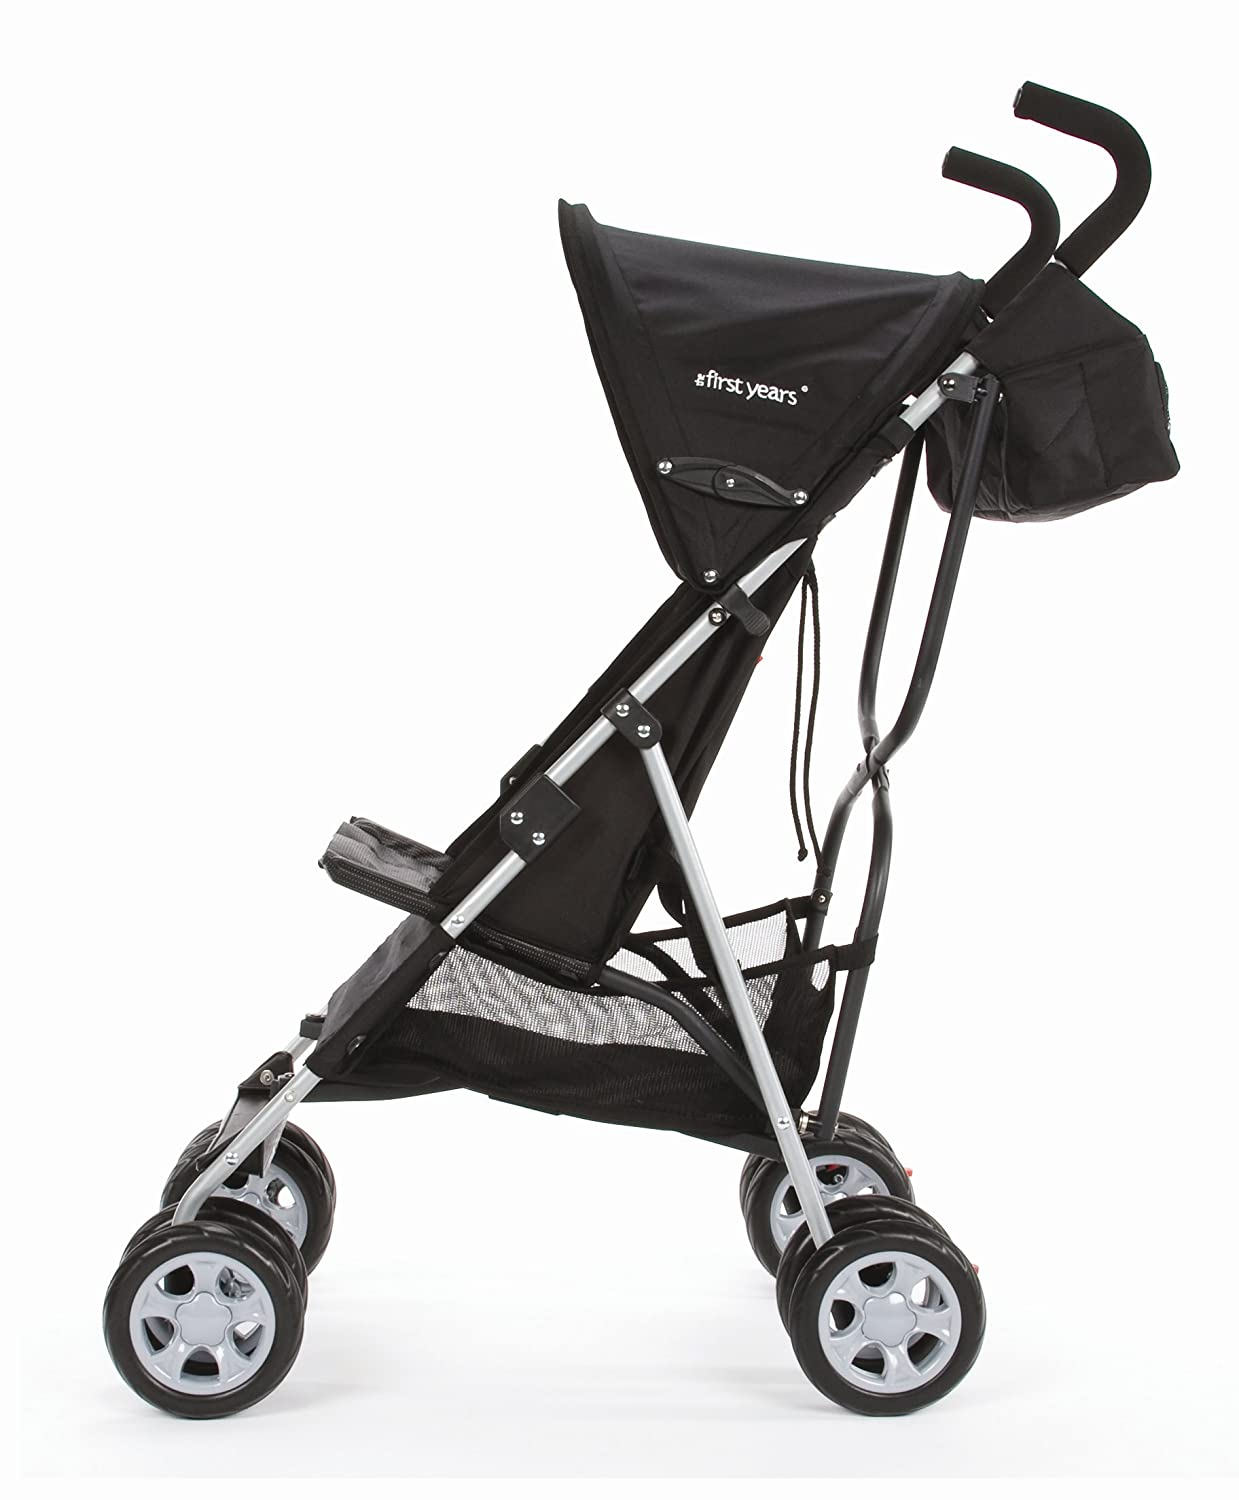 Amazon.com : The First Years Jet Stroller, City Chic (Discontinued ...